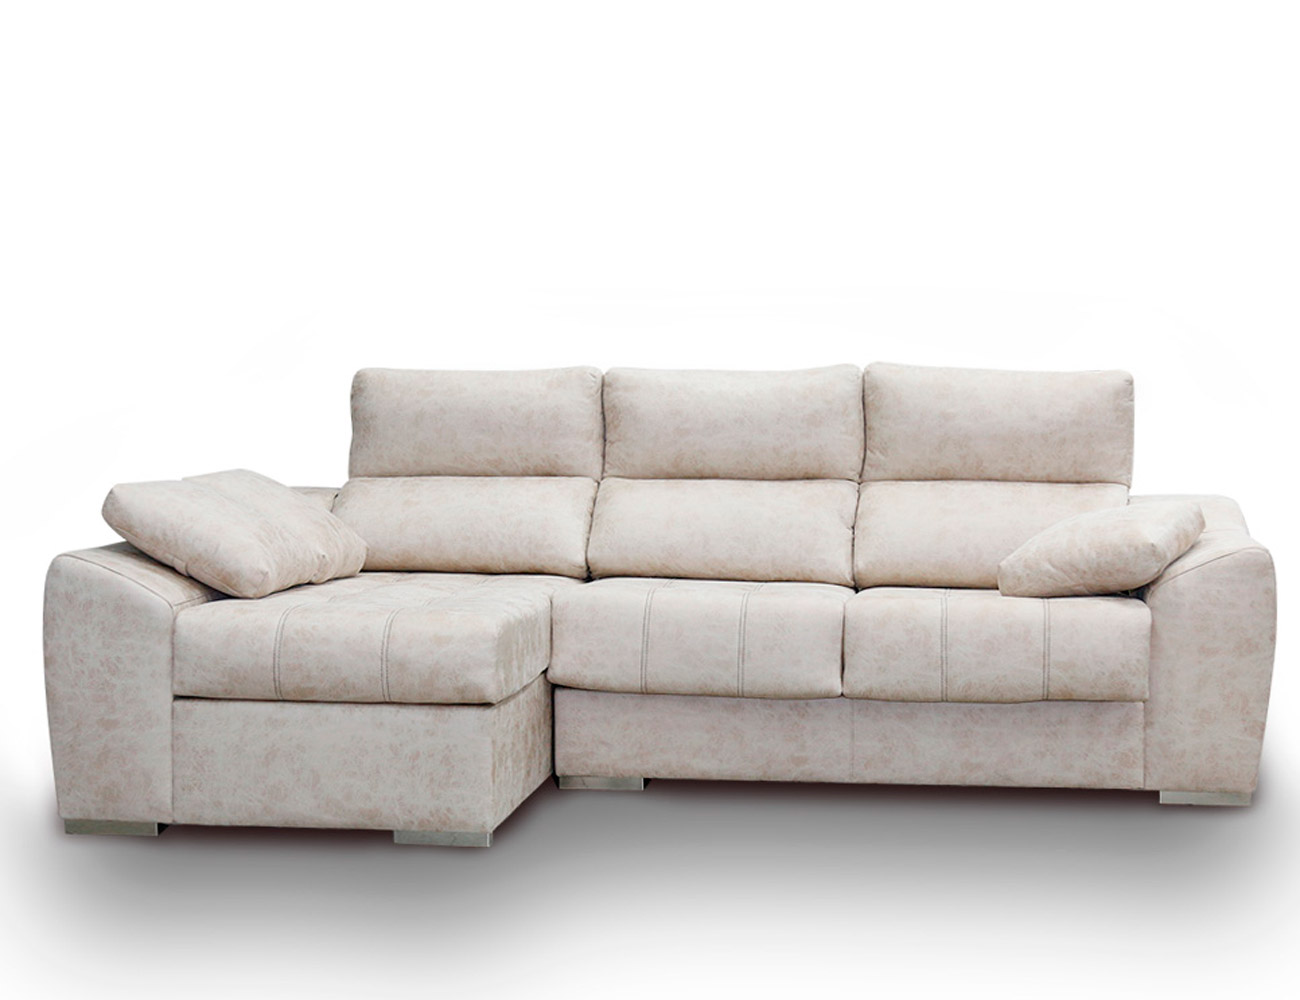 Sofa chaiselongue anti manchas beig blanco18